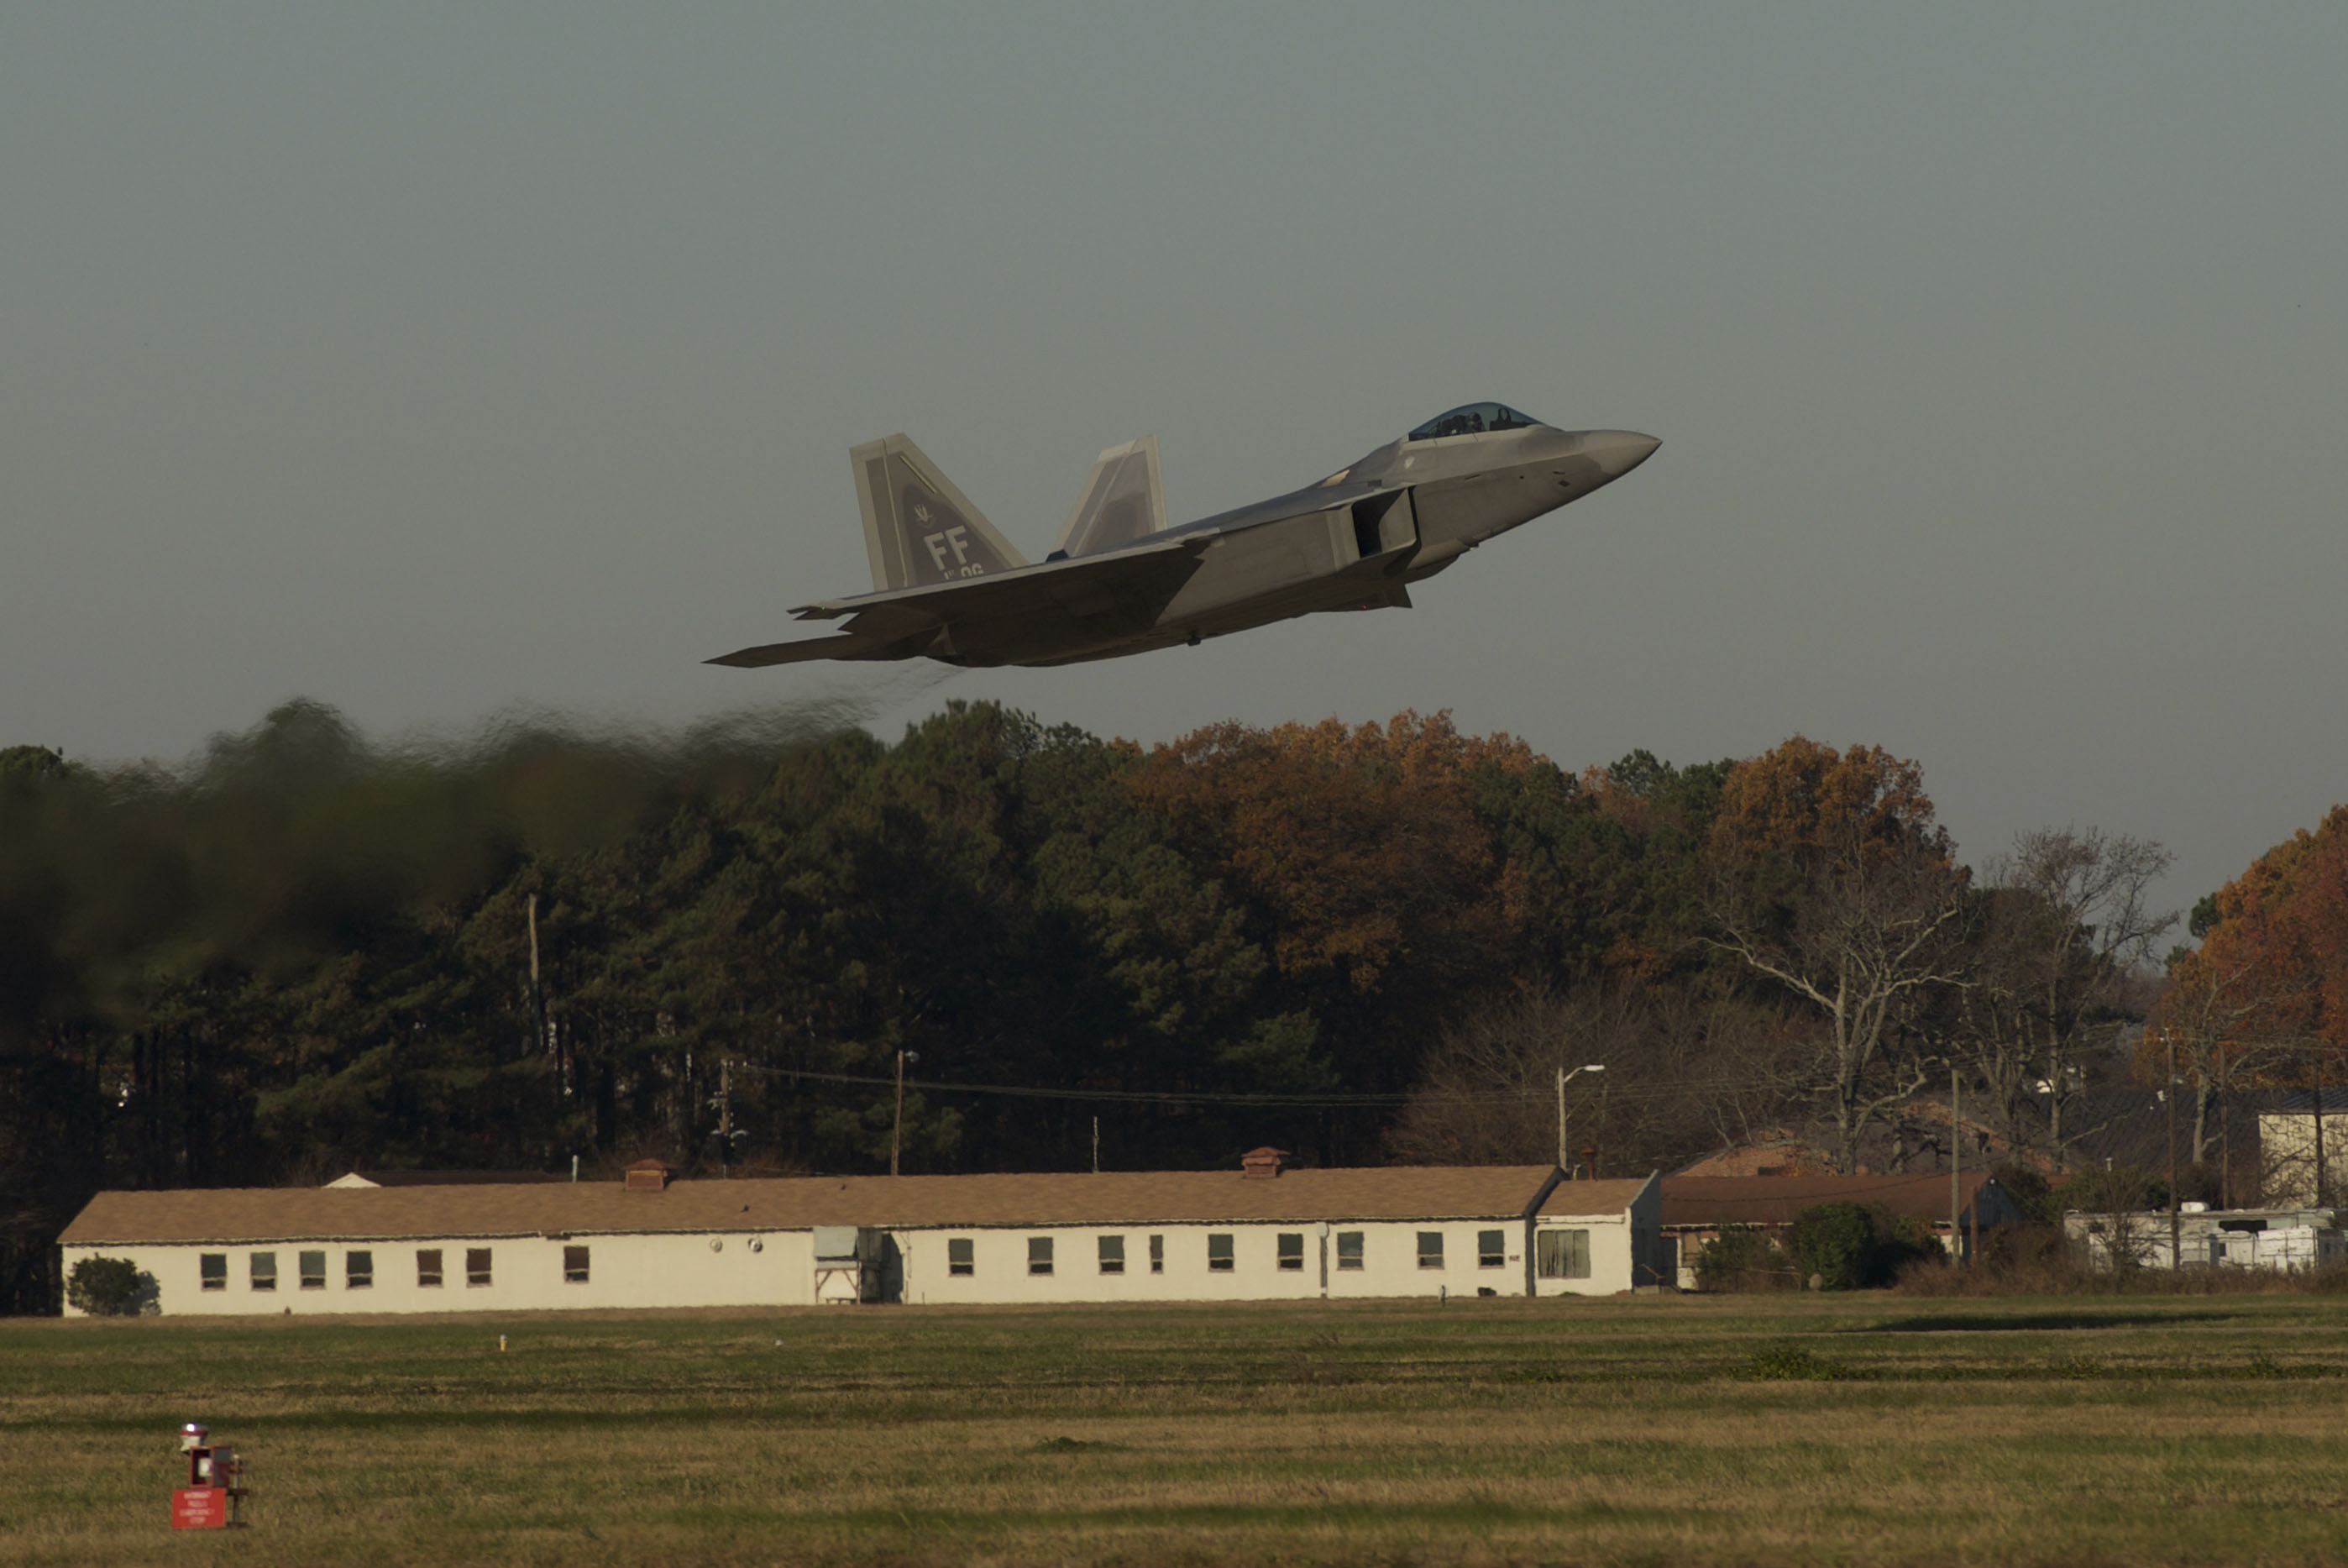 A U.S. Air Force F-22 Raptor takes off for the inaugural Trilateral Exercise at Langley Air Force Base, Va., Dec. 4, 2015. Approximately 230 U.S. Airmen worked alongside British Royal Air Force and French air force personnel during the exercise. (U.S. Air Force photo by Airman 1st Class Derek Seifert)